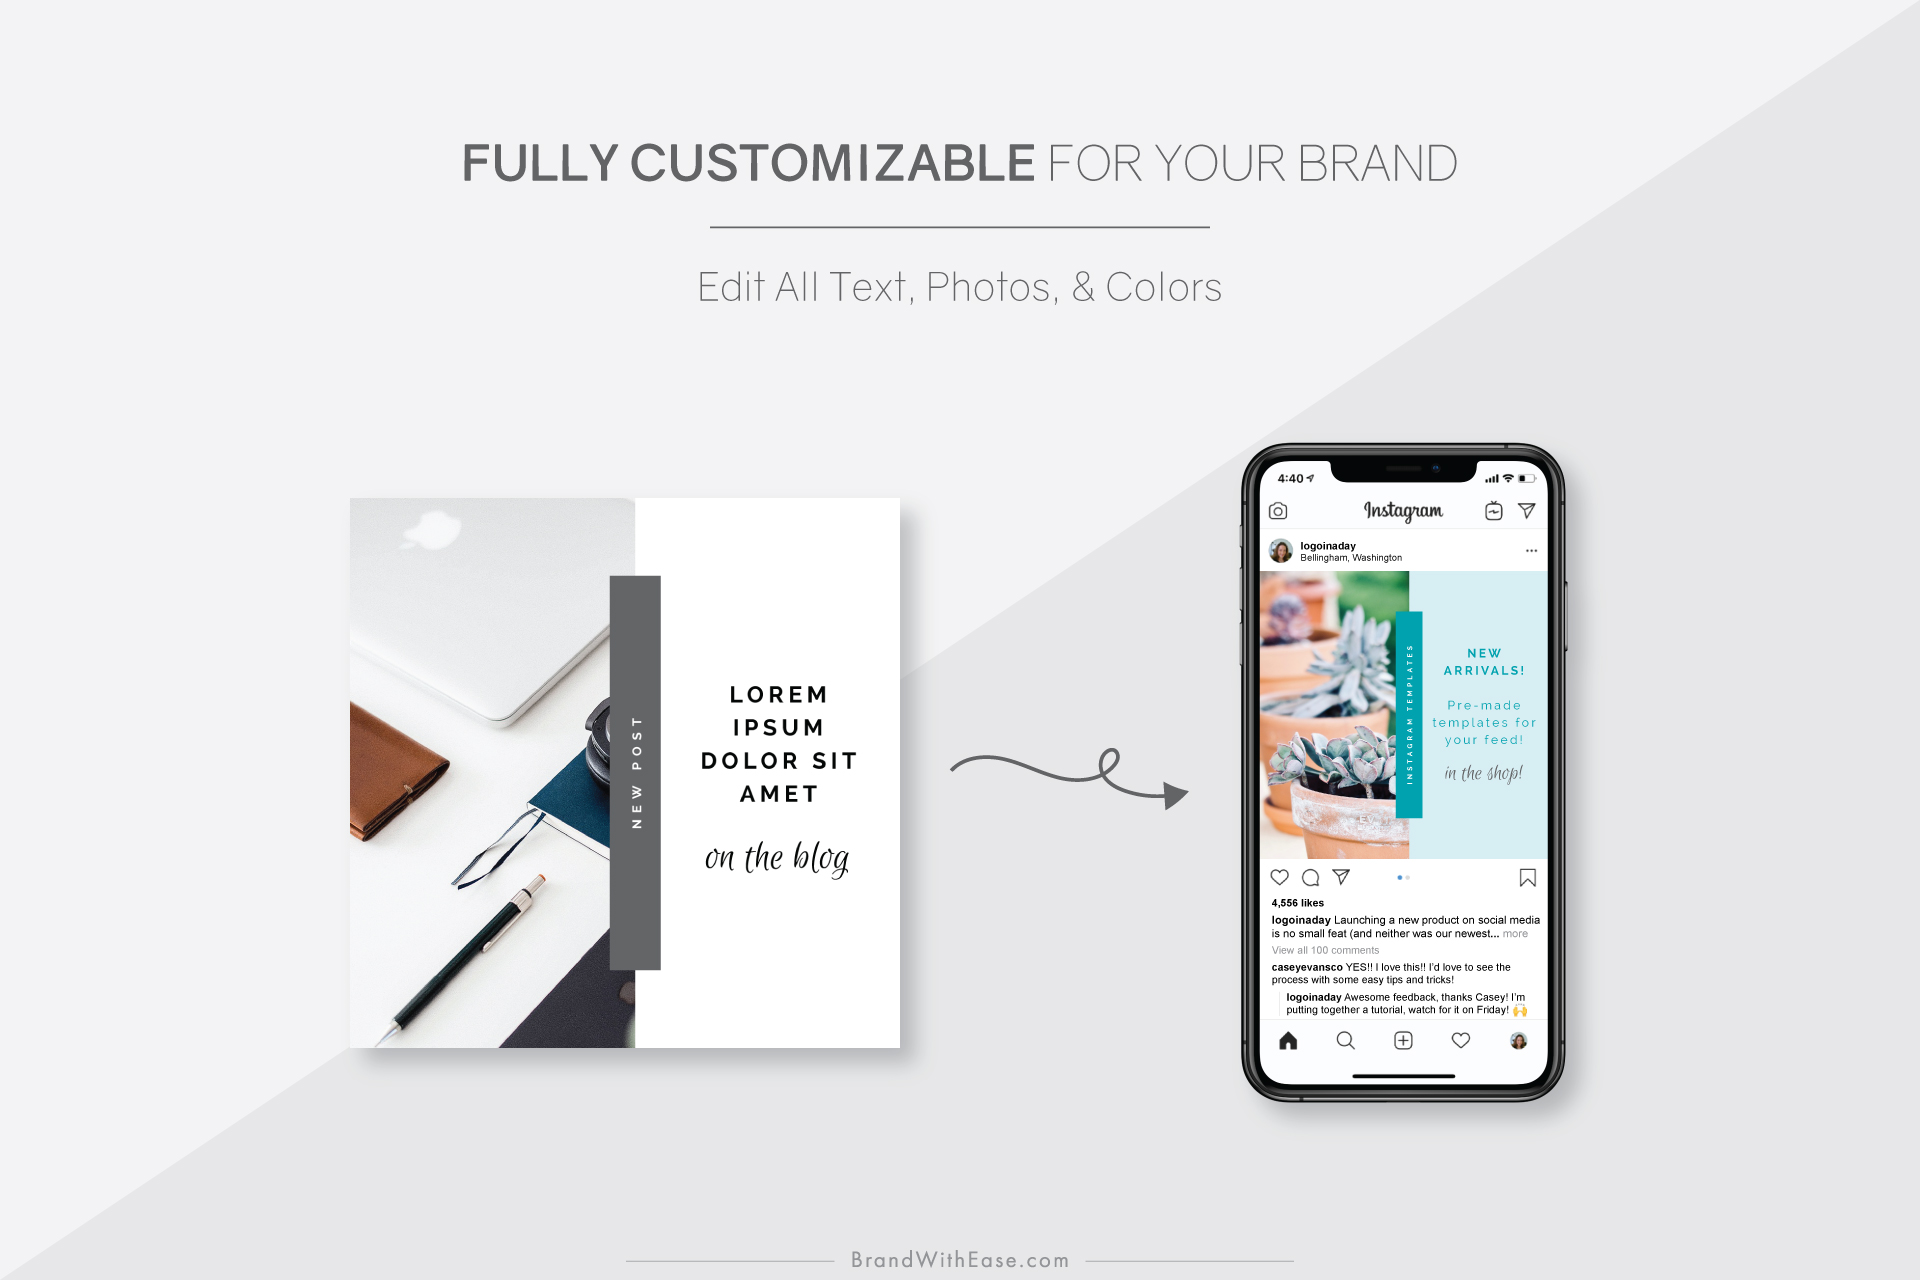 Brand-With-Ease-DIY-Template-Pack-Customizable.jpg